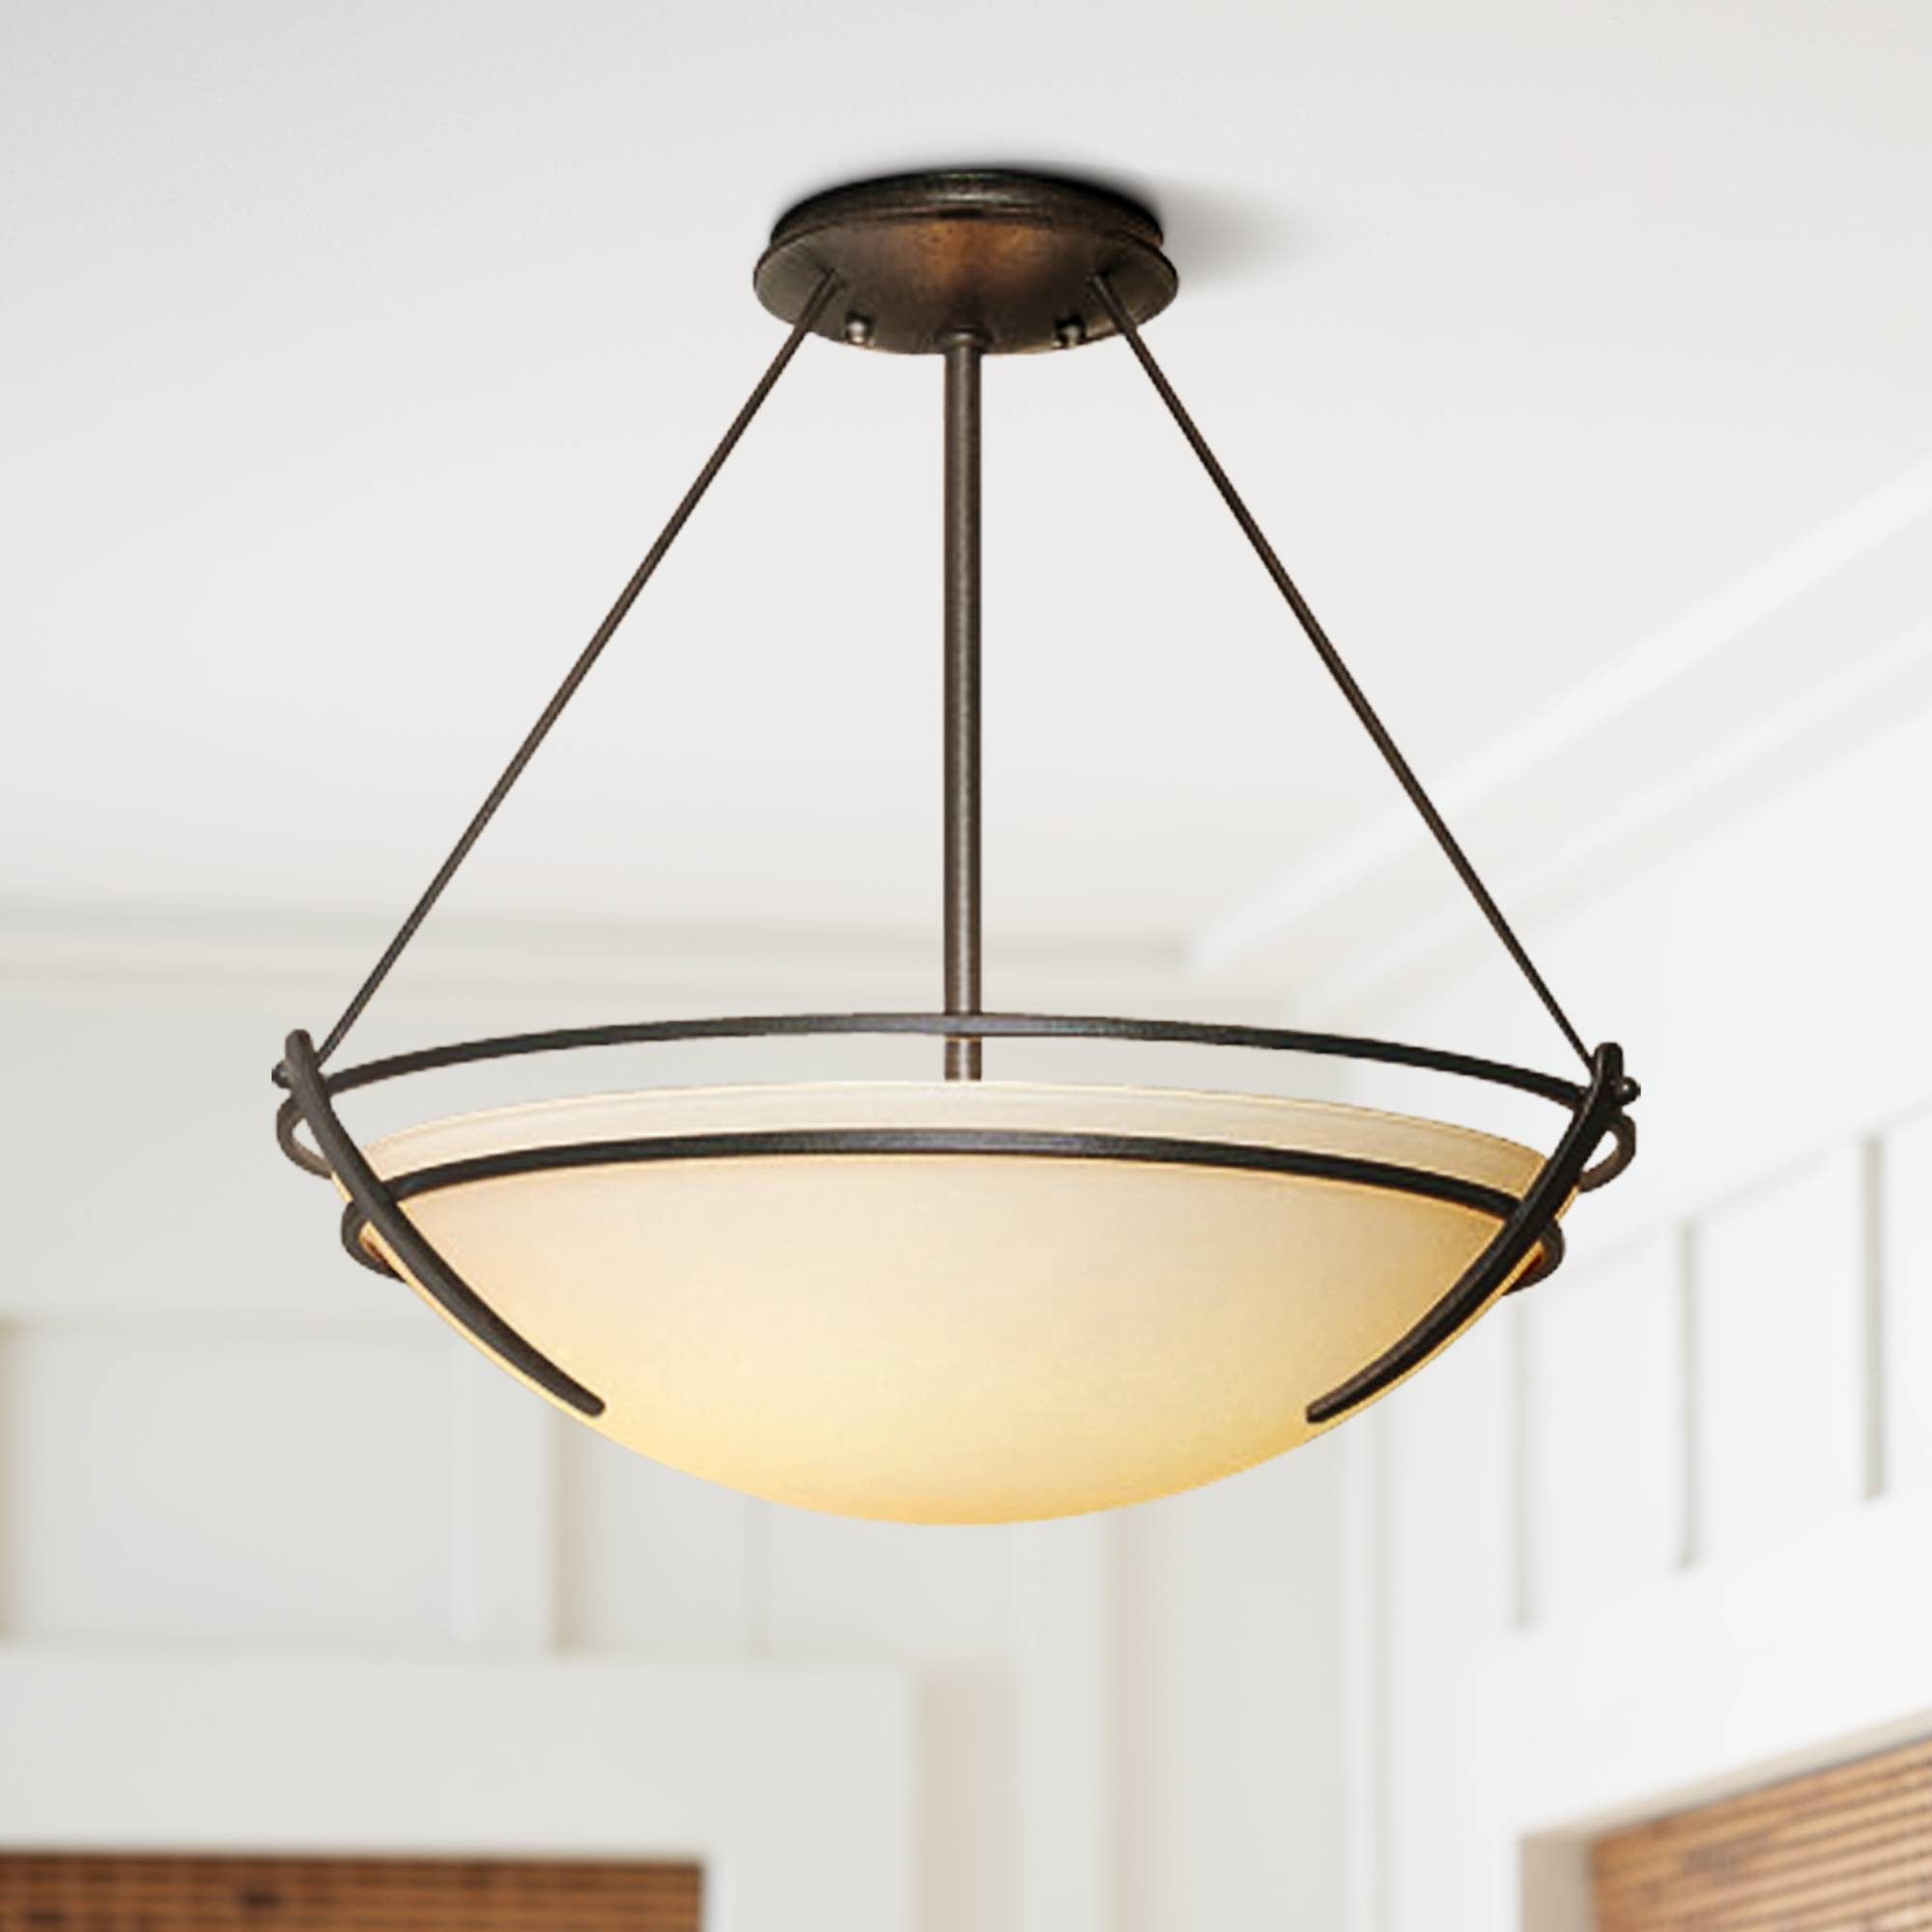 Custom Professional Lighting Fixtures Hubbardton Forge